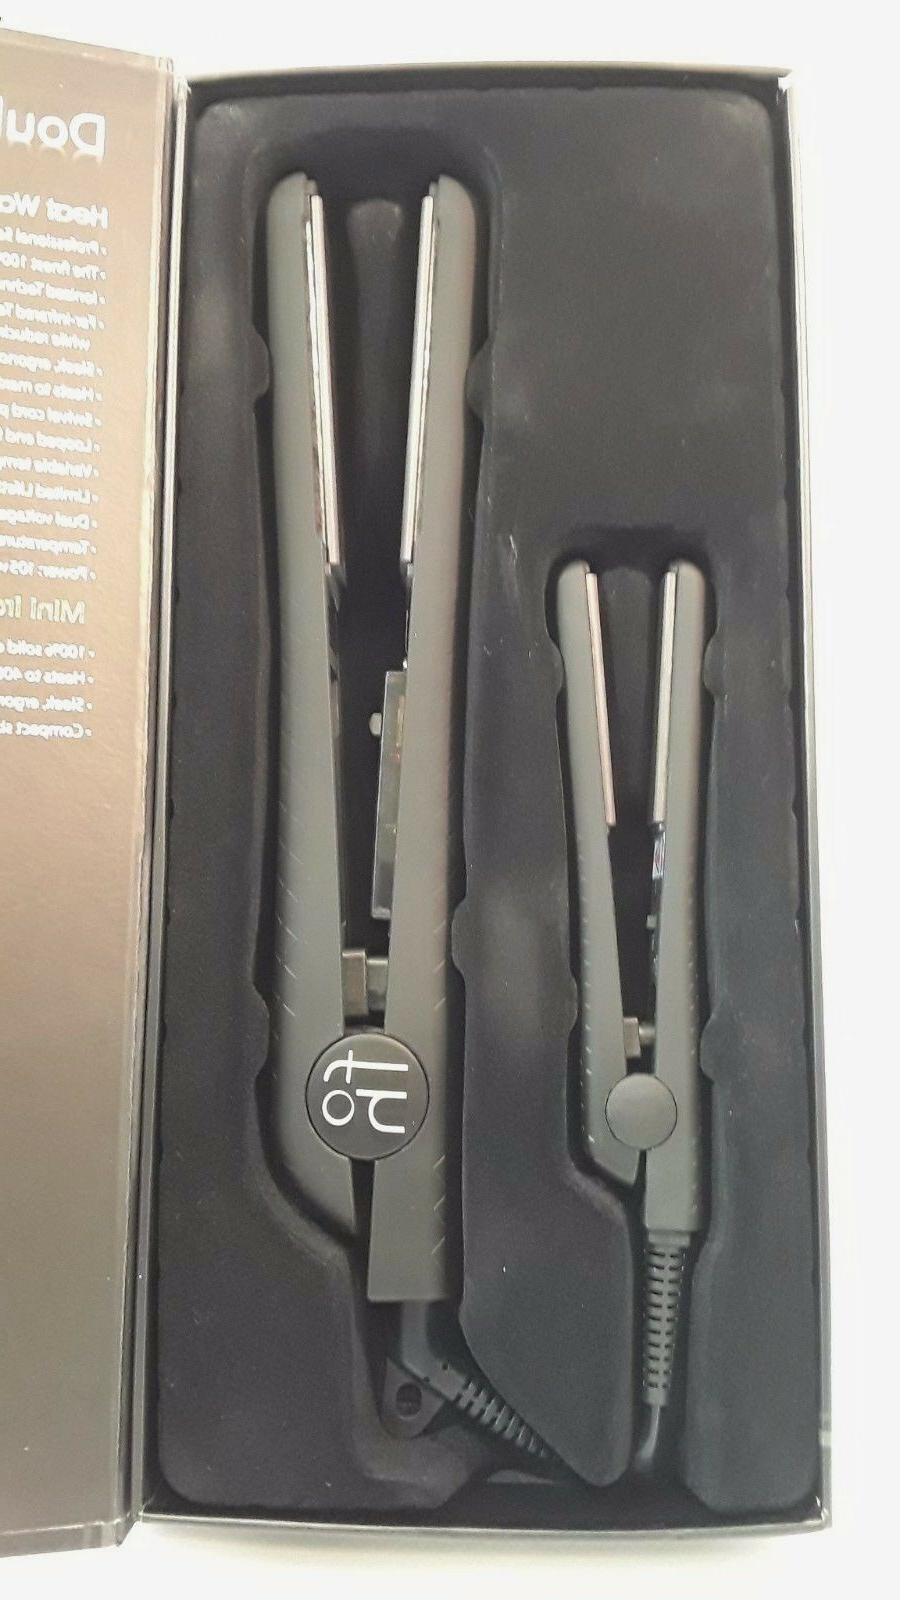 FAHRENHEIT Double Trouble Meadow FLAT IRON 1¼' & Mini Iron